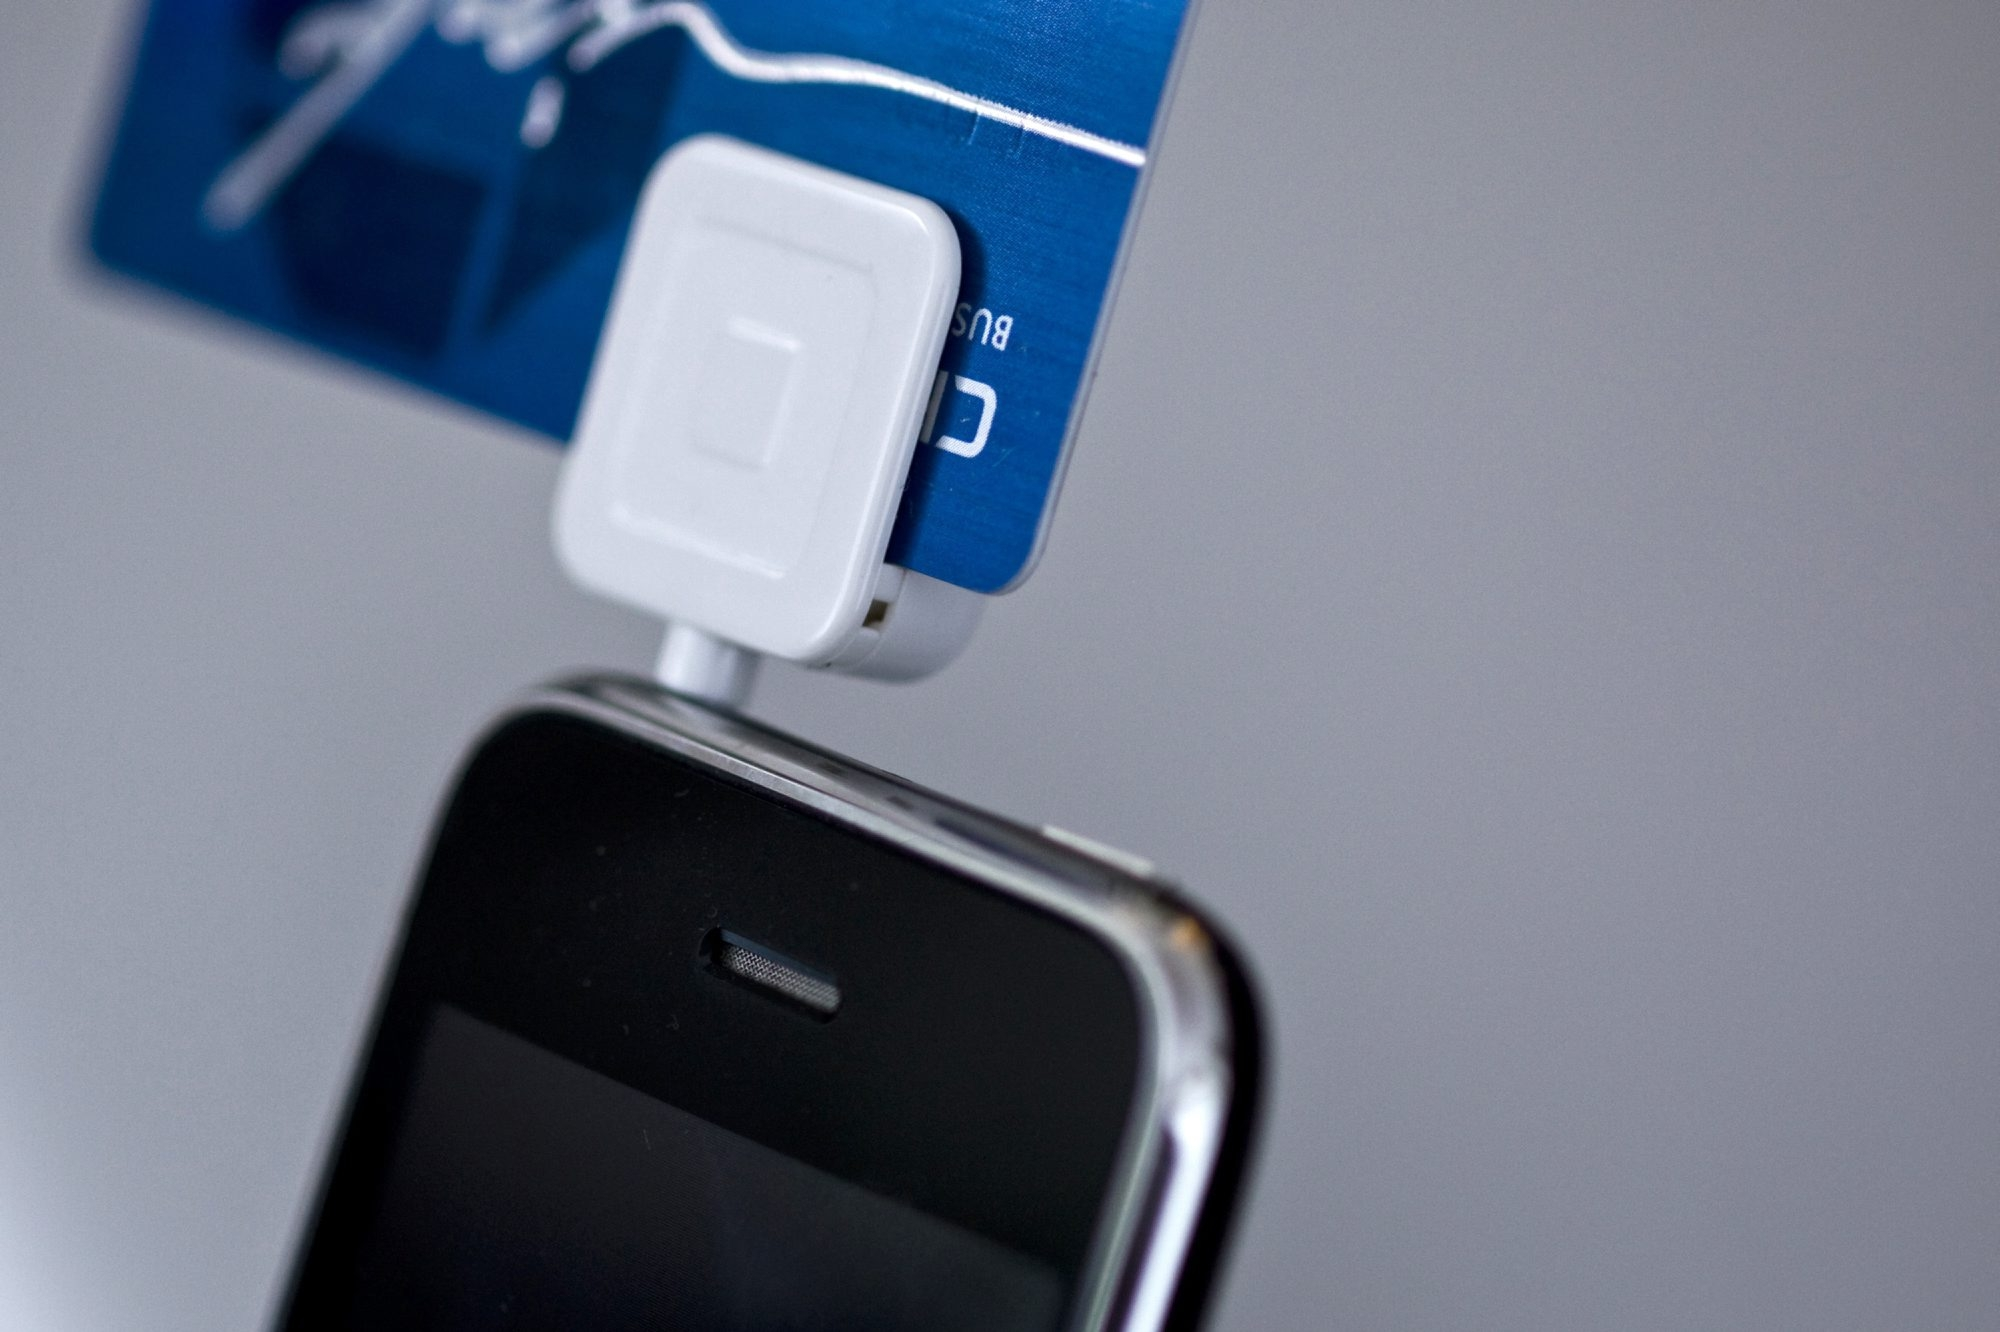 Square, a credit card reader made for smartphones, is weighing an initial public offering of stock as soon as this year.